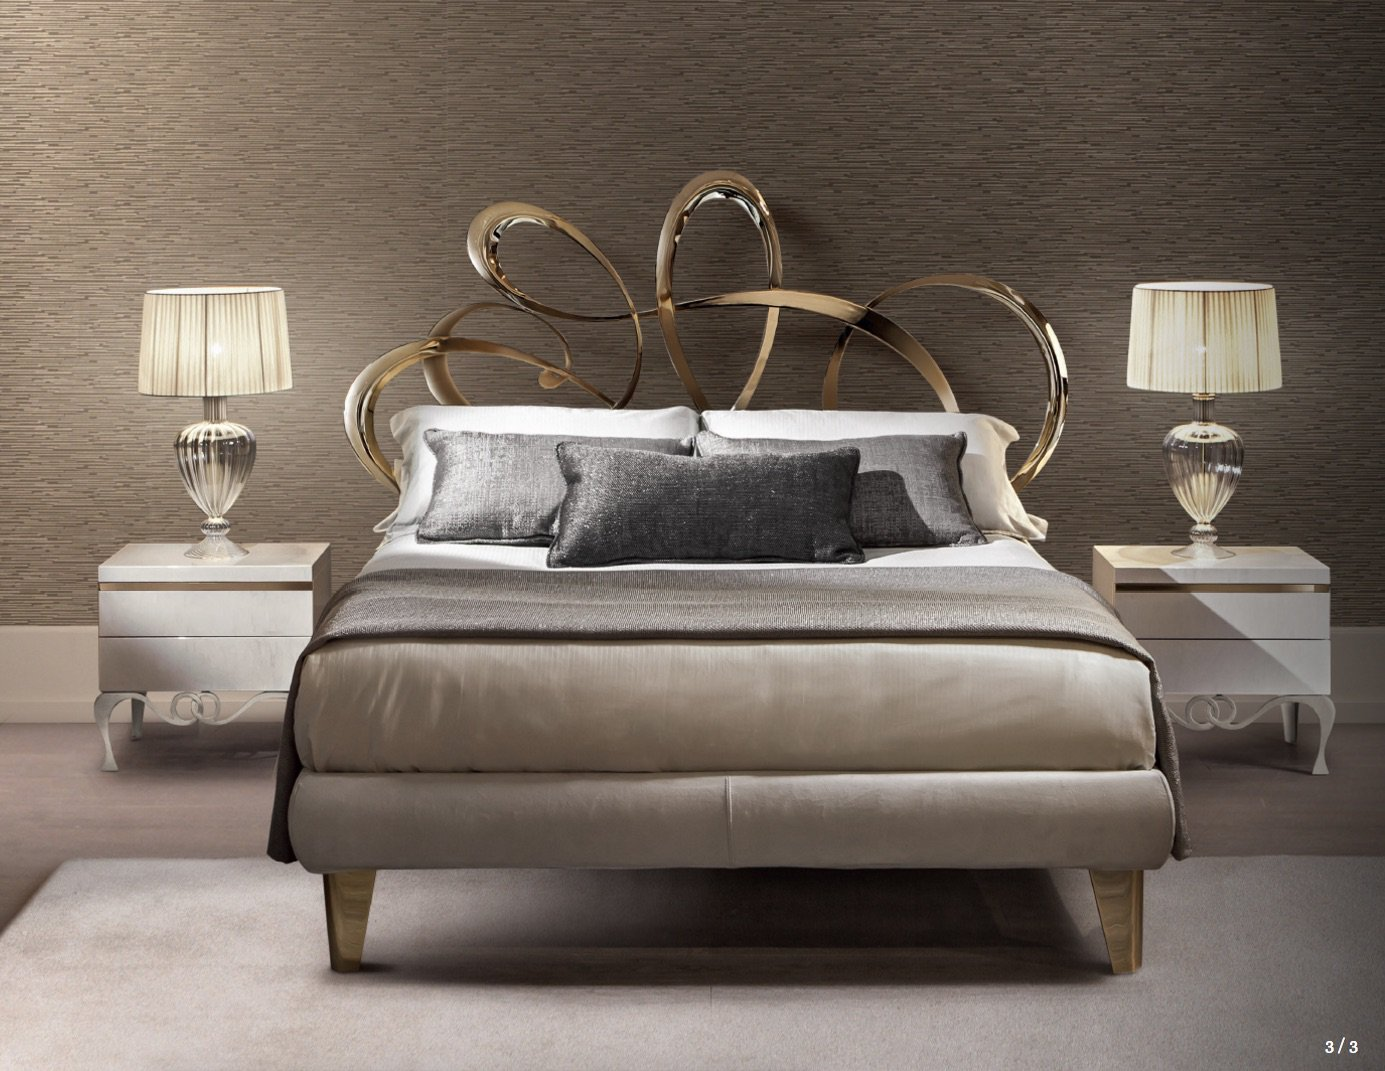 veracchi_mobili_italian_furniture_wrought_iron_bed_bedroom_set_design